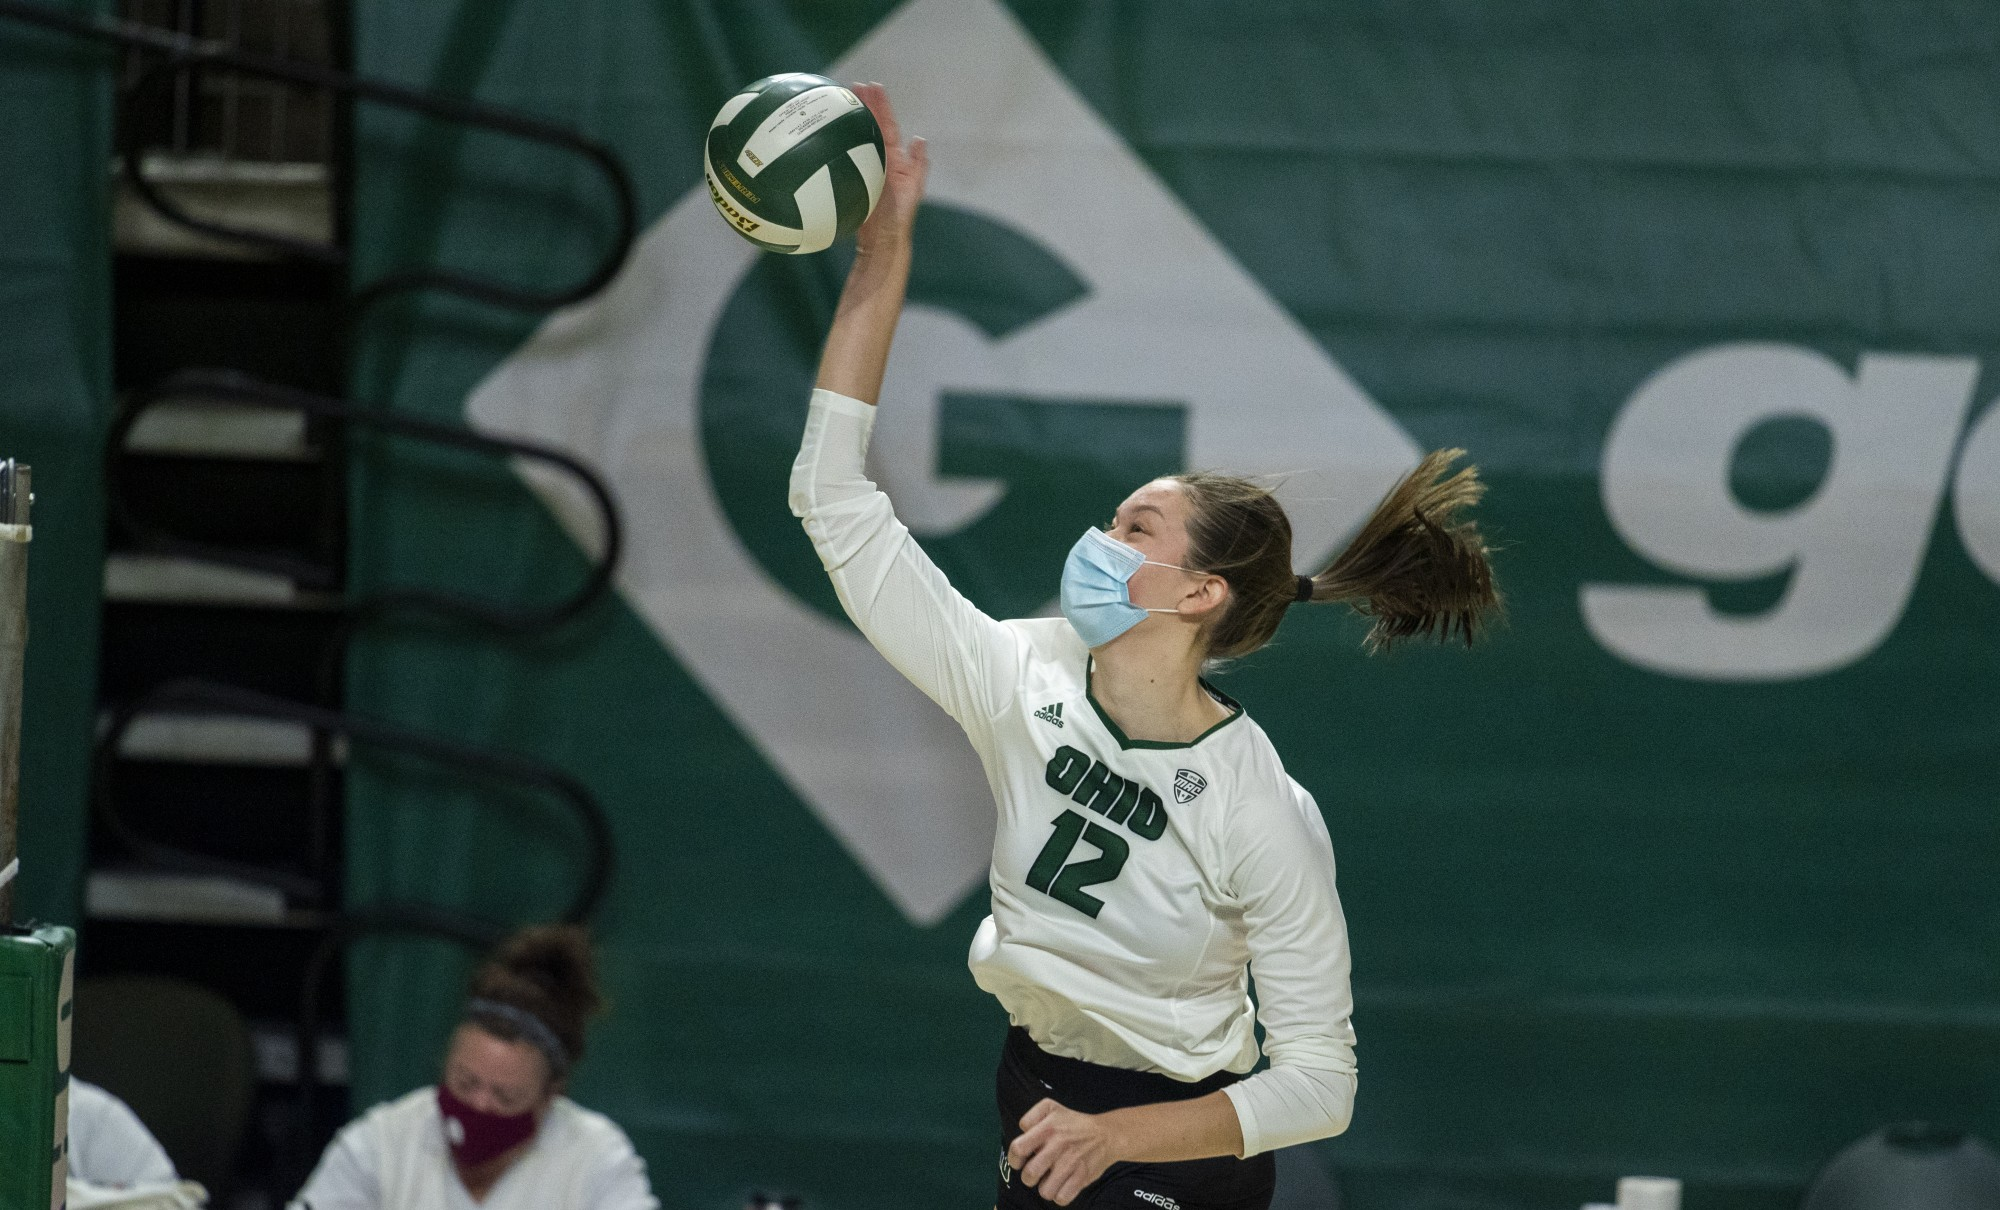 Redshirt freshman, Caitlin O'Farrell (12), hits the ball during the Bobcats first home game on Friday, Jan. 22, 2021. The game was postponed to Saturday due to a county wide blackout.